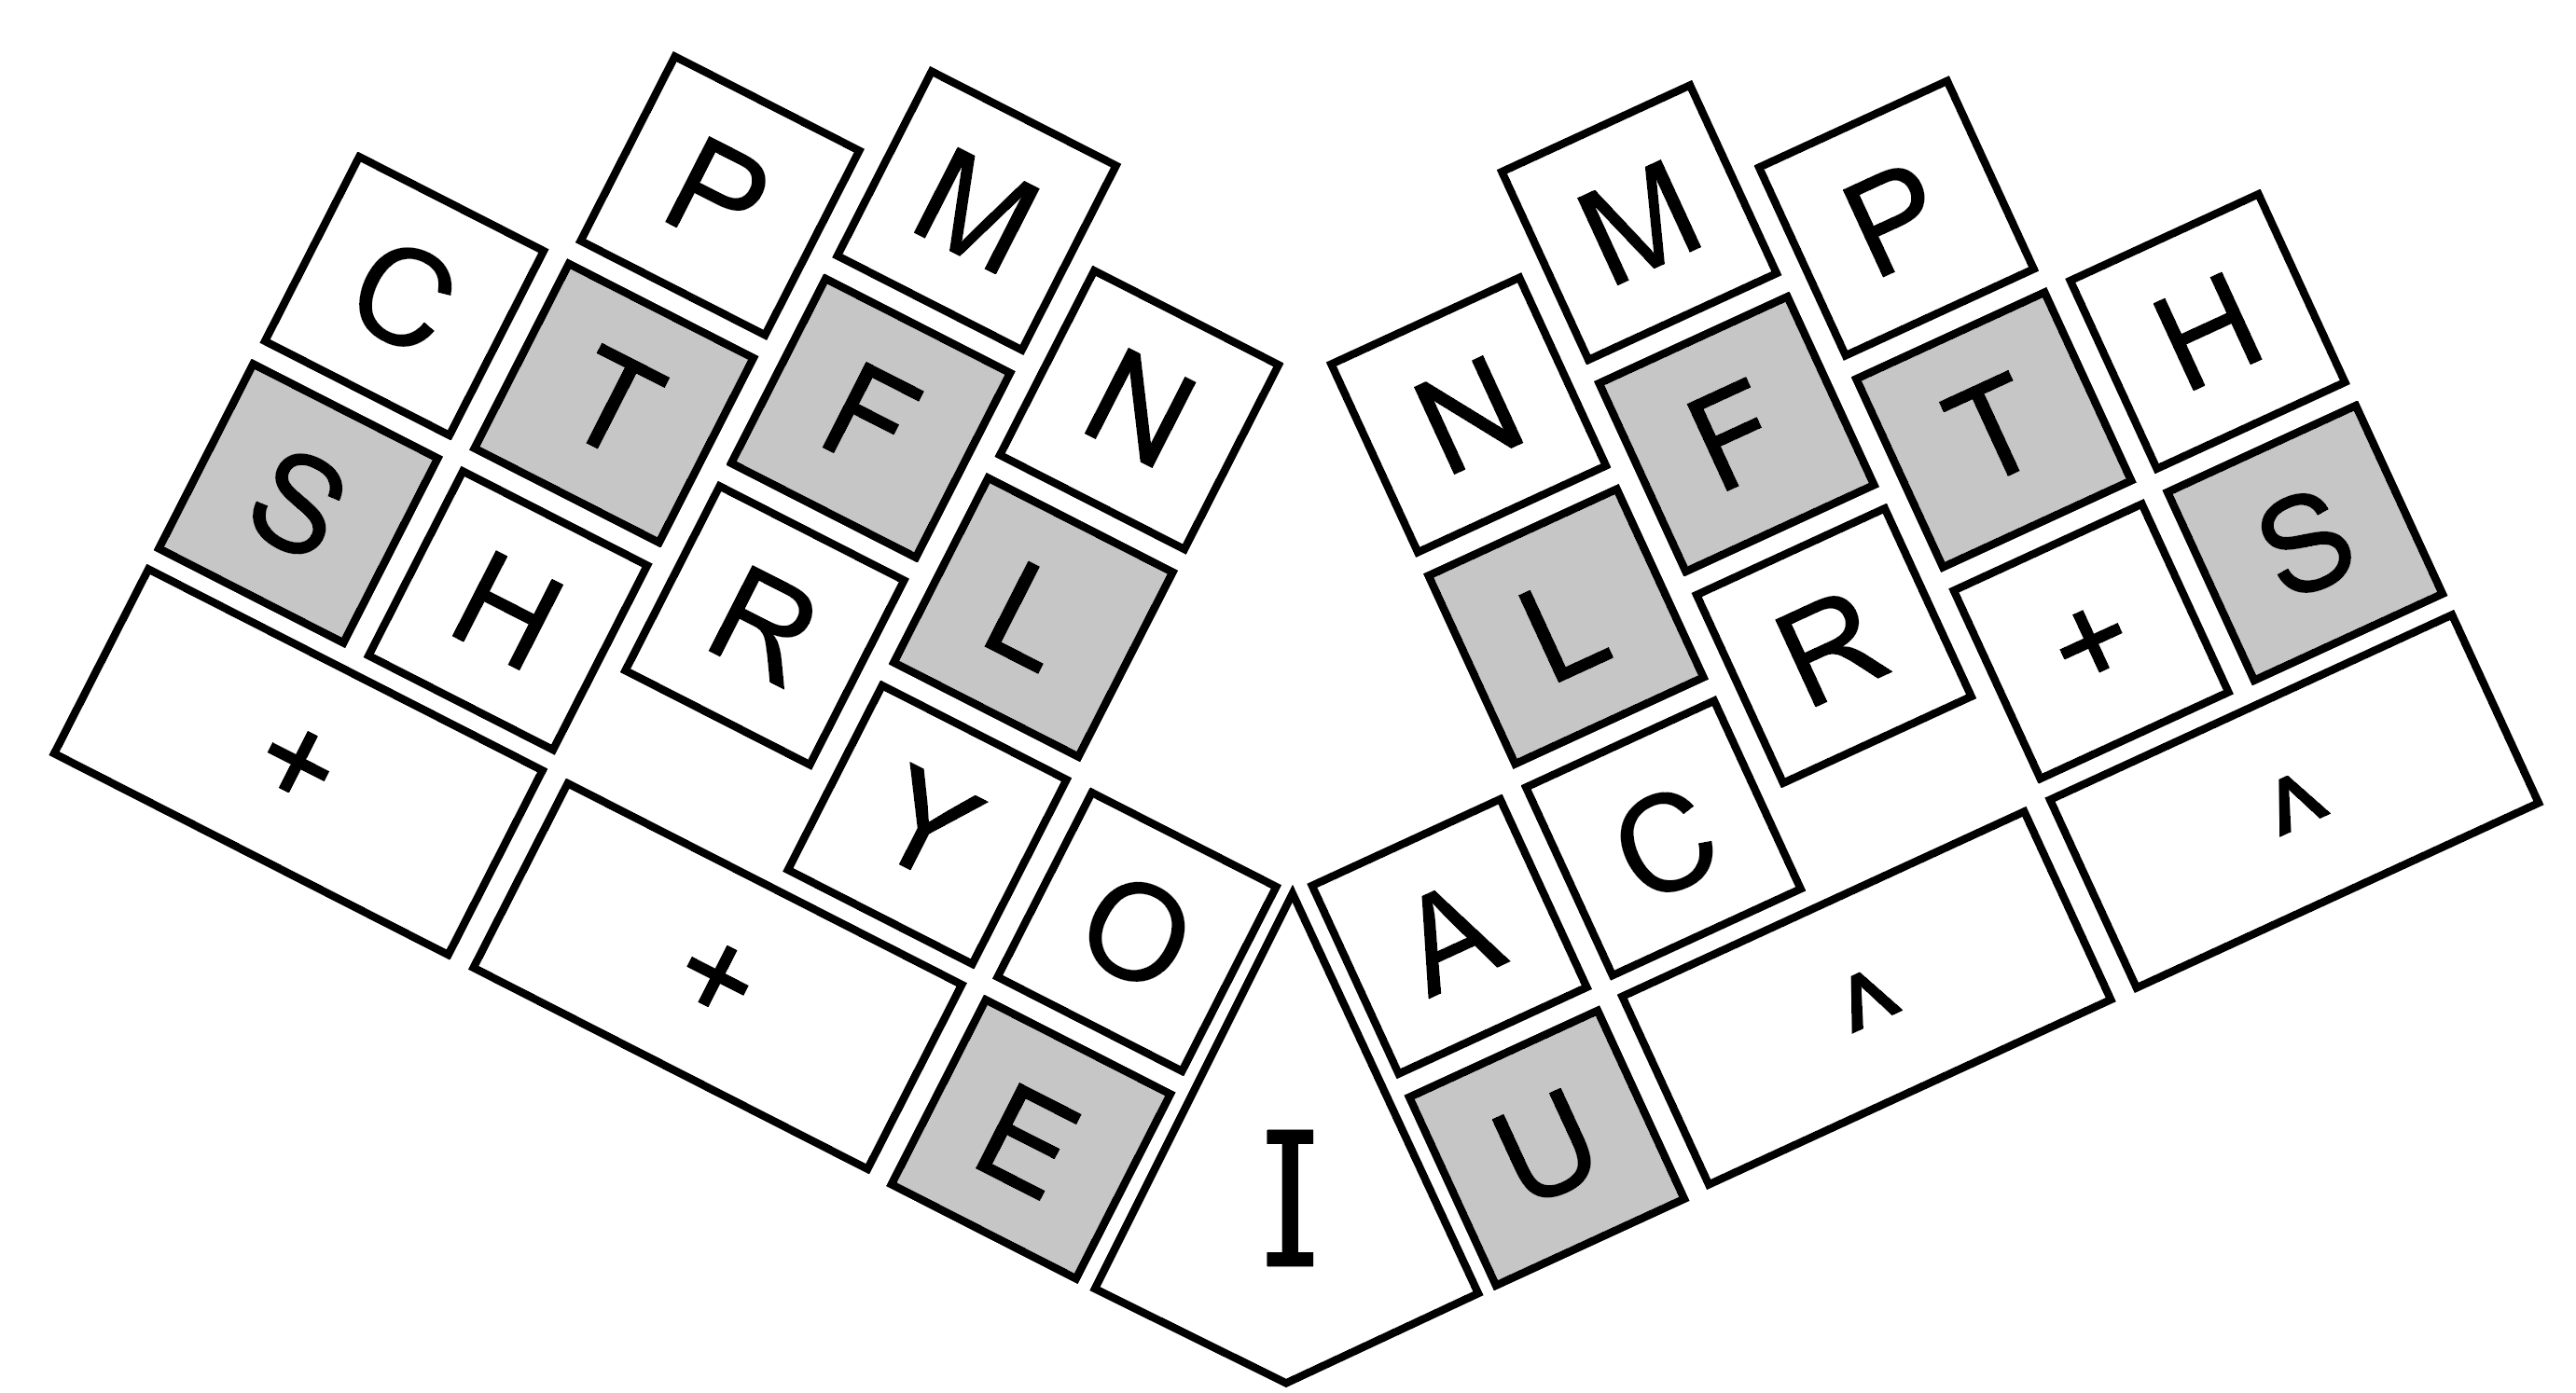 Diagram of the Palantype home row where the home keys are shaded in